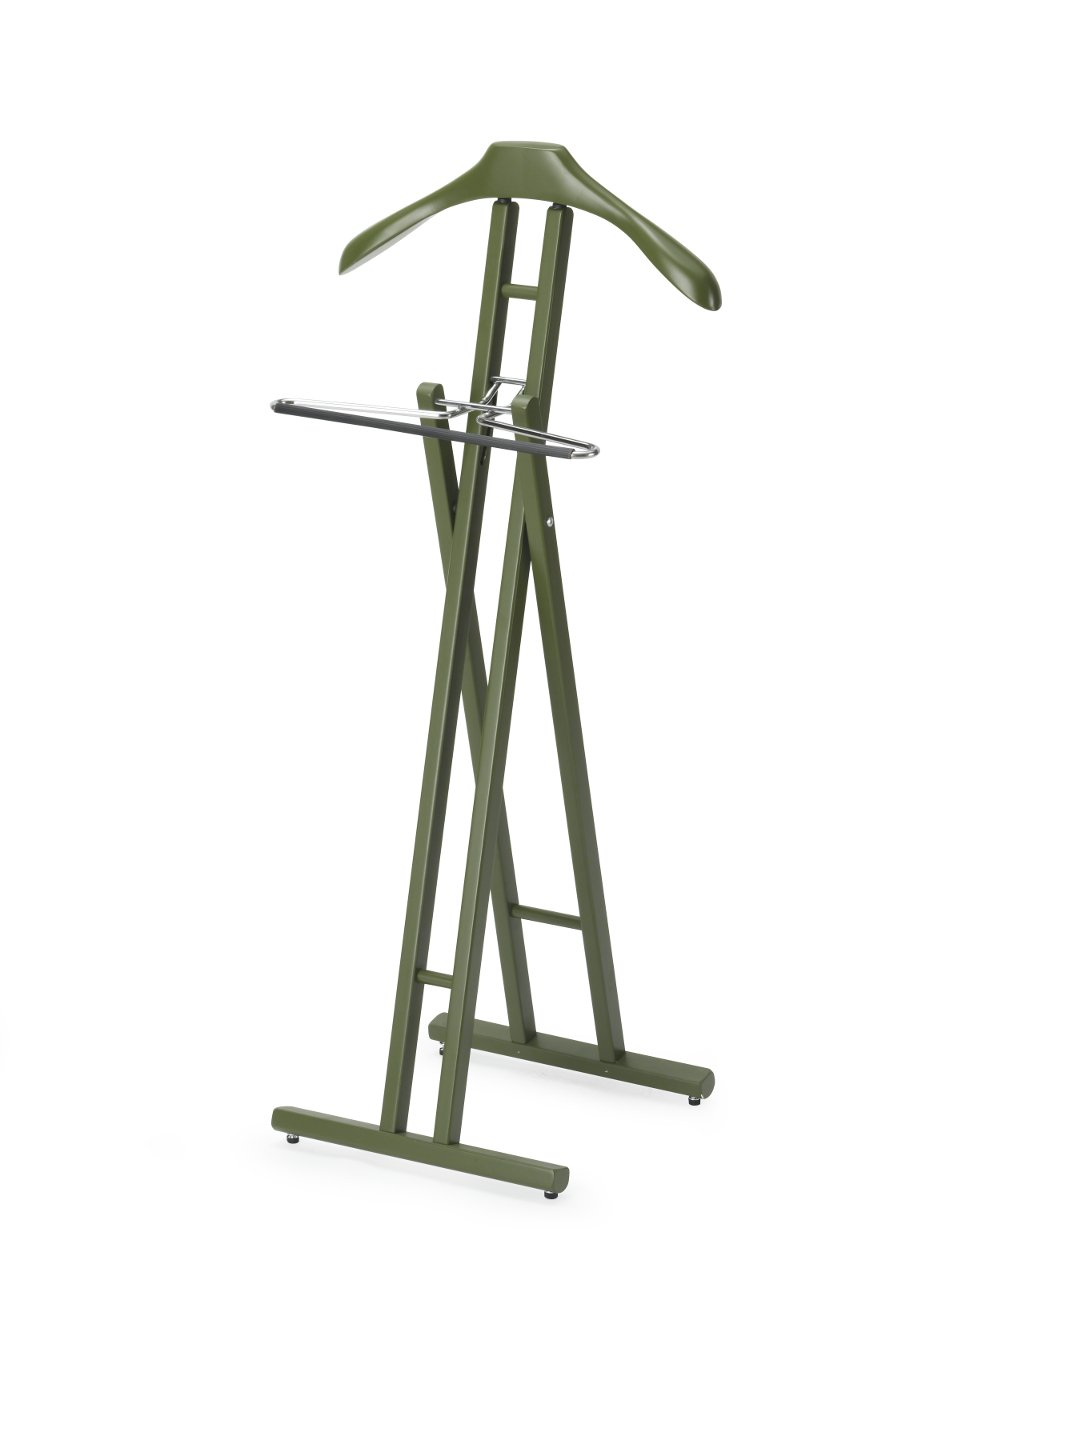 ARIS KLAPP - Folding Valet Stand in Solid Beech Wood -Handcrafted in Italy - Camouflage Green Finish 371 VR